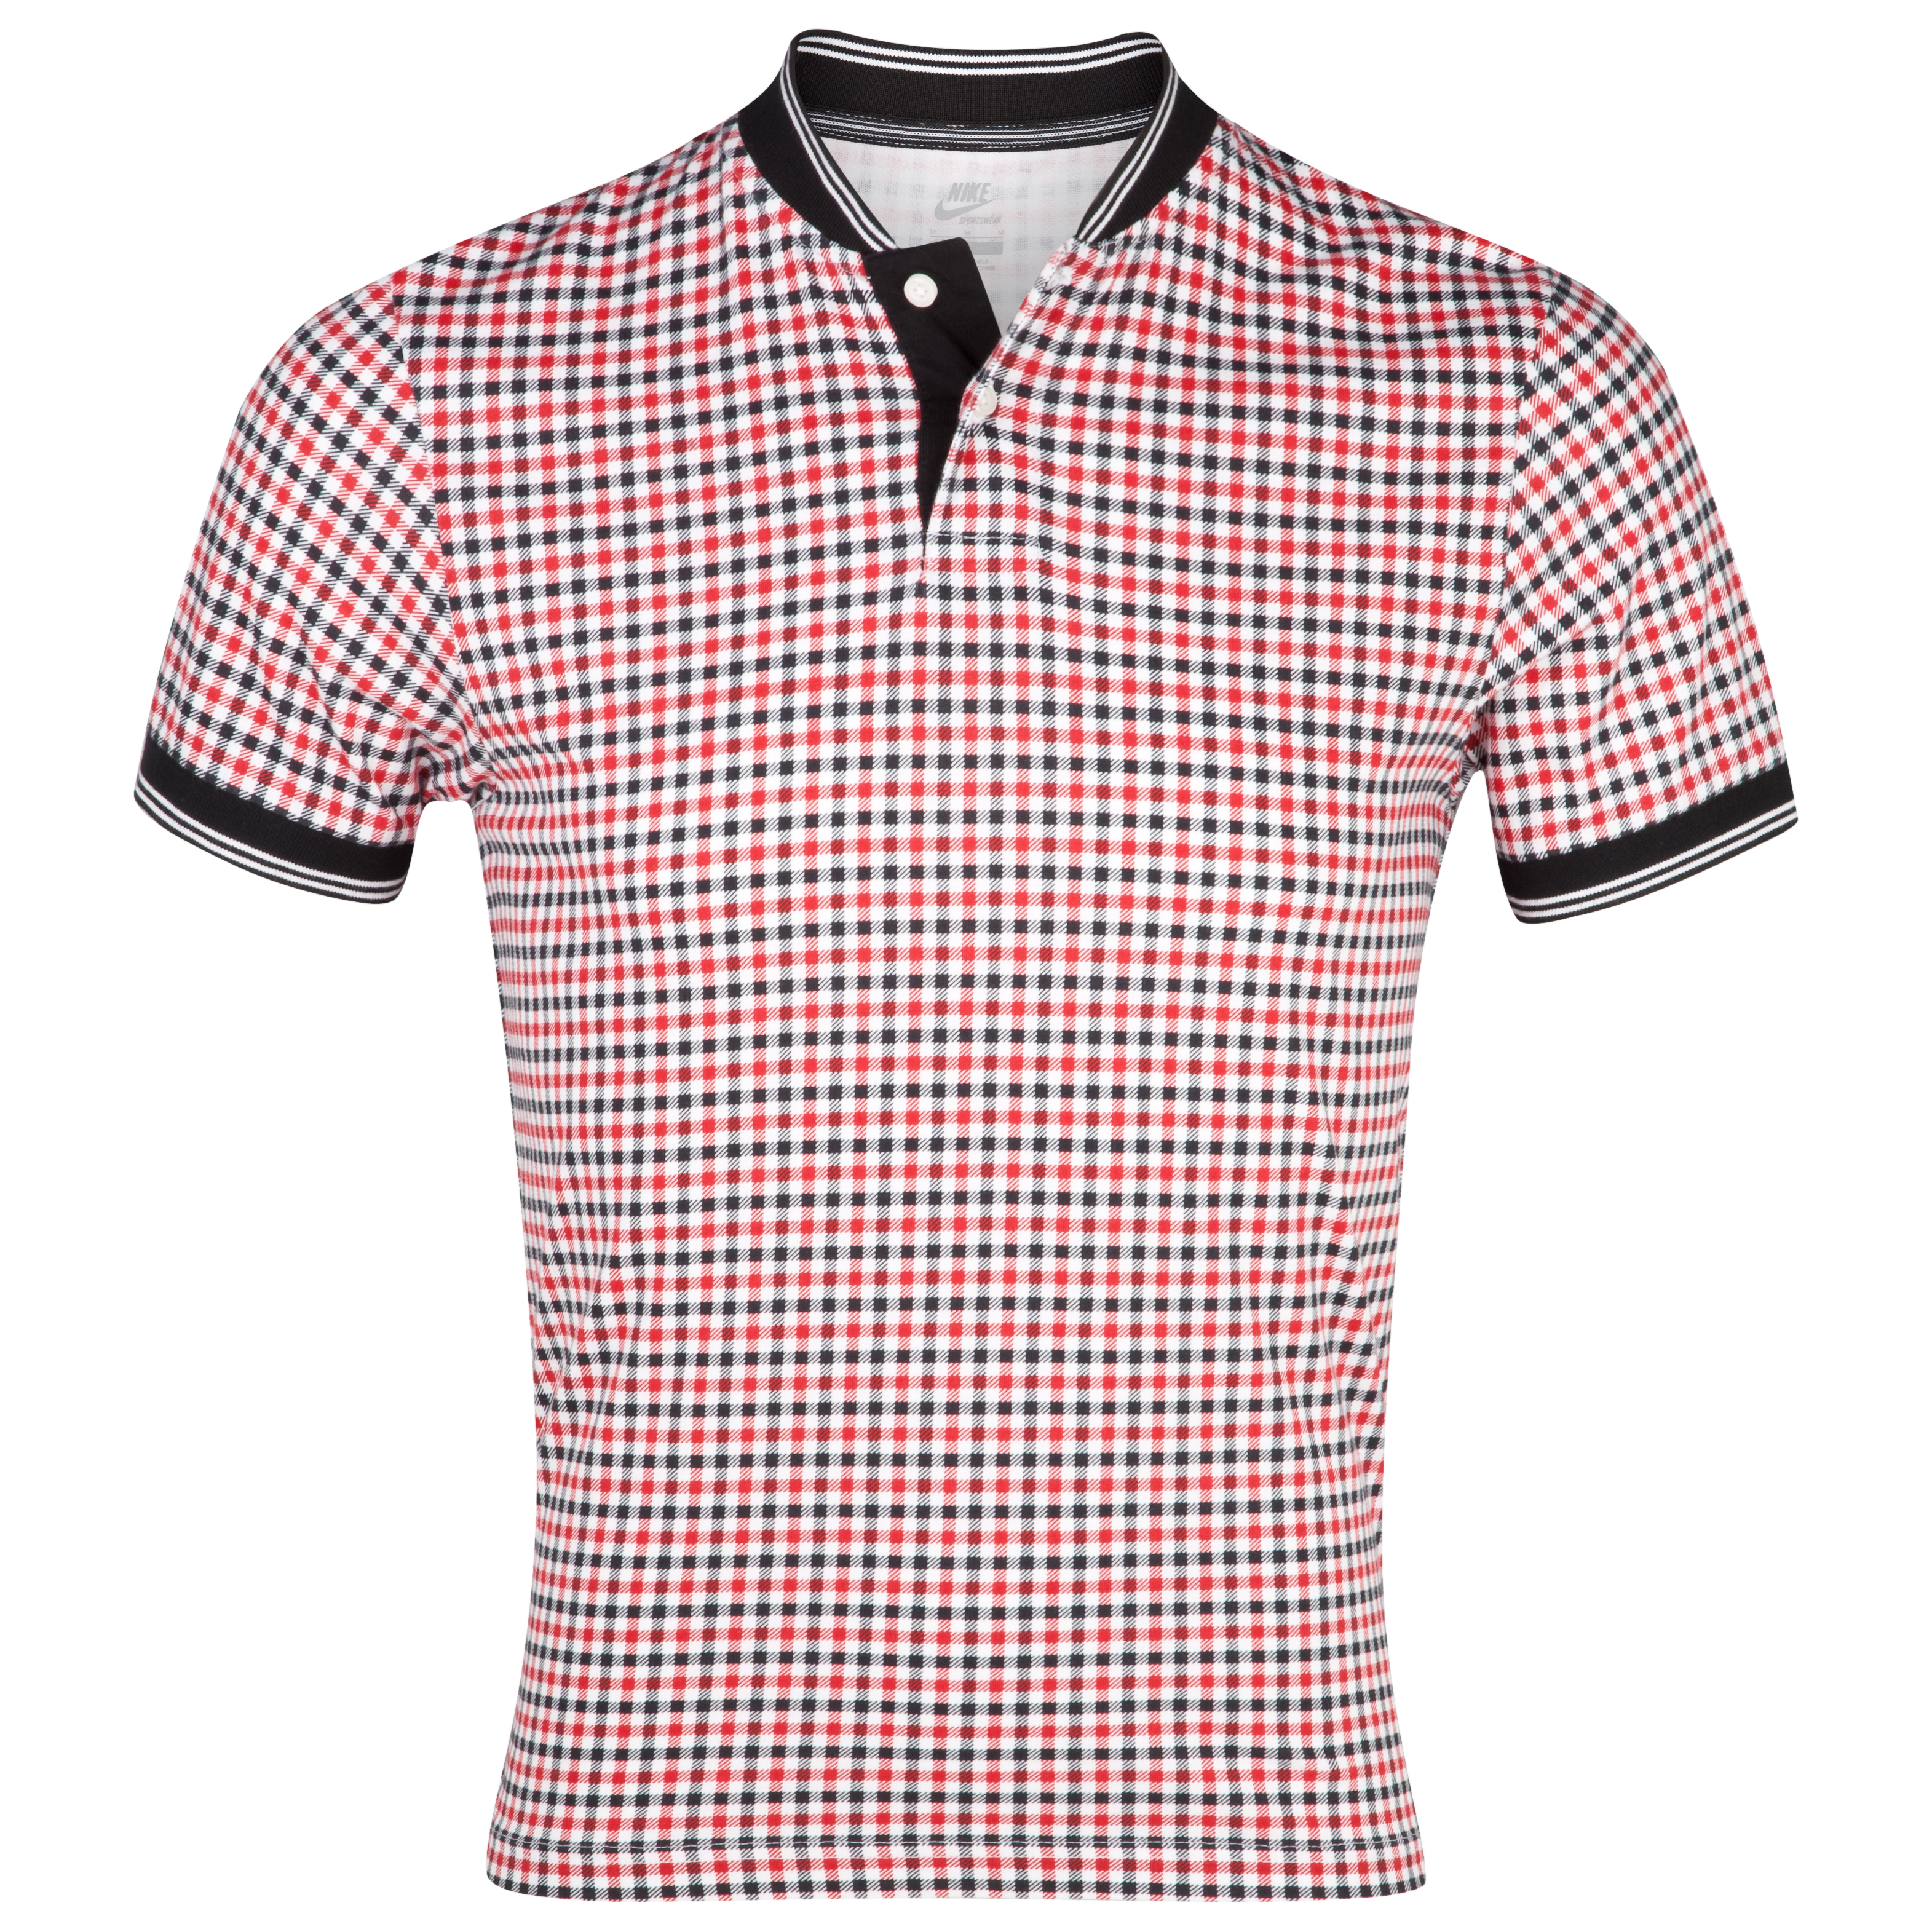 Manchester United NSW Penny Collar Polo - White/Red/Black